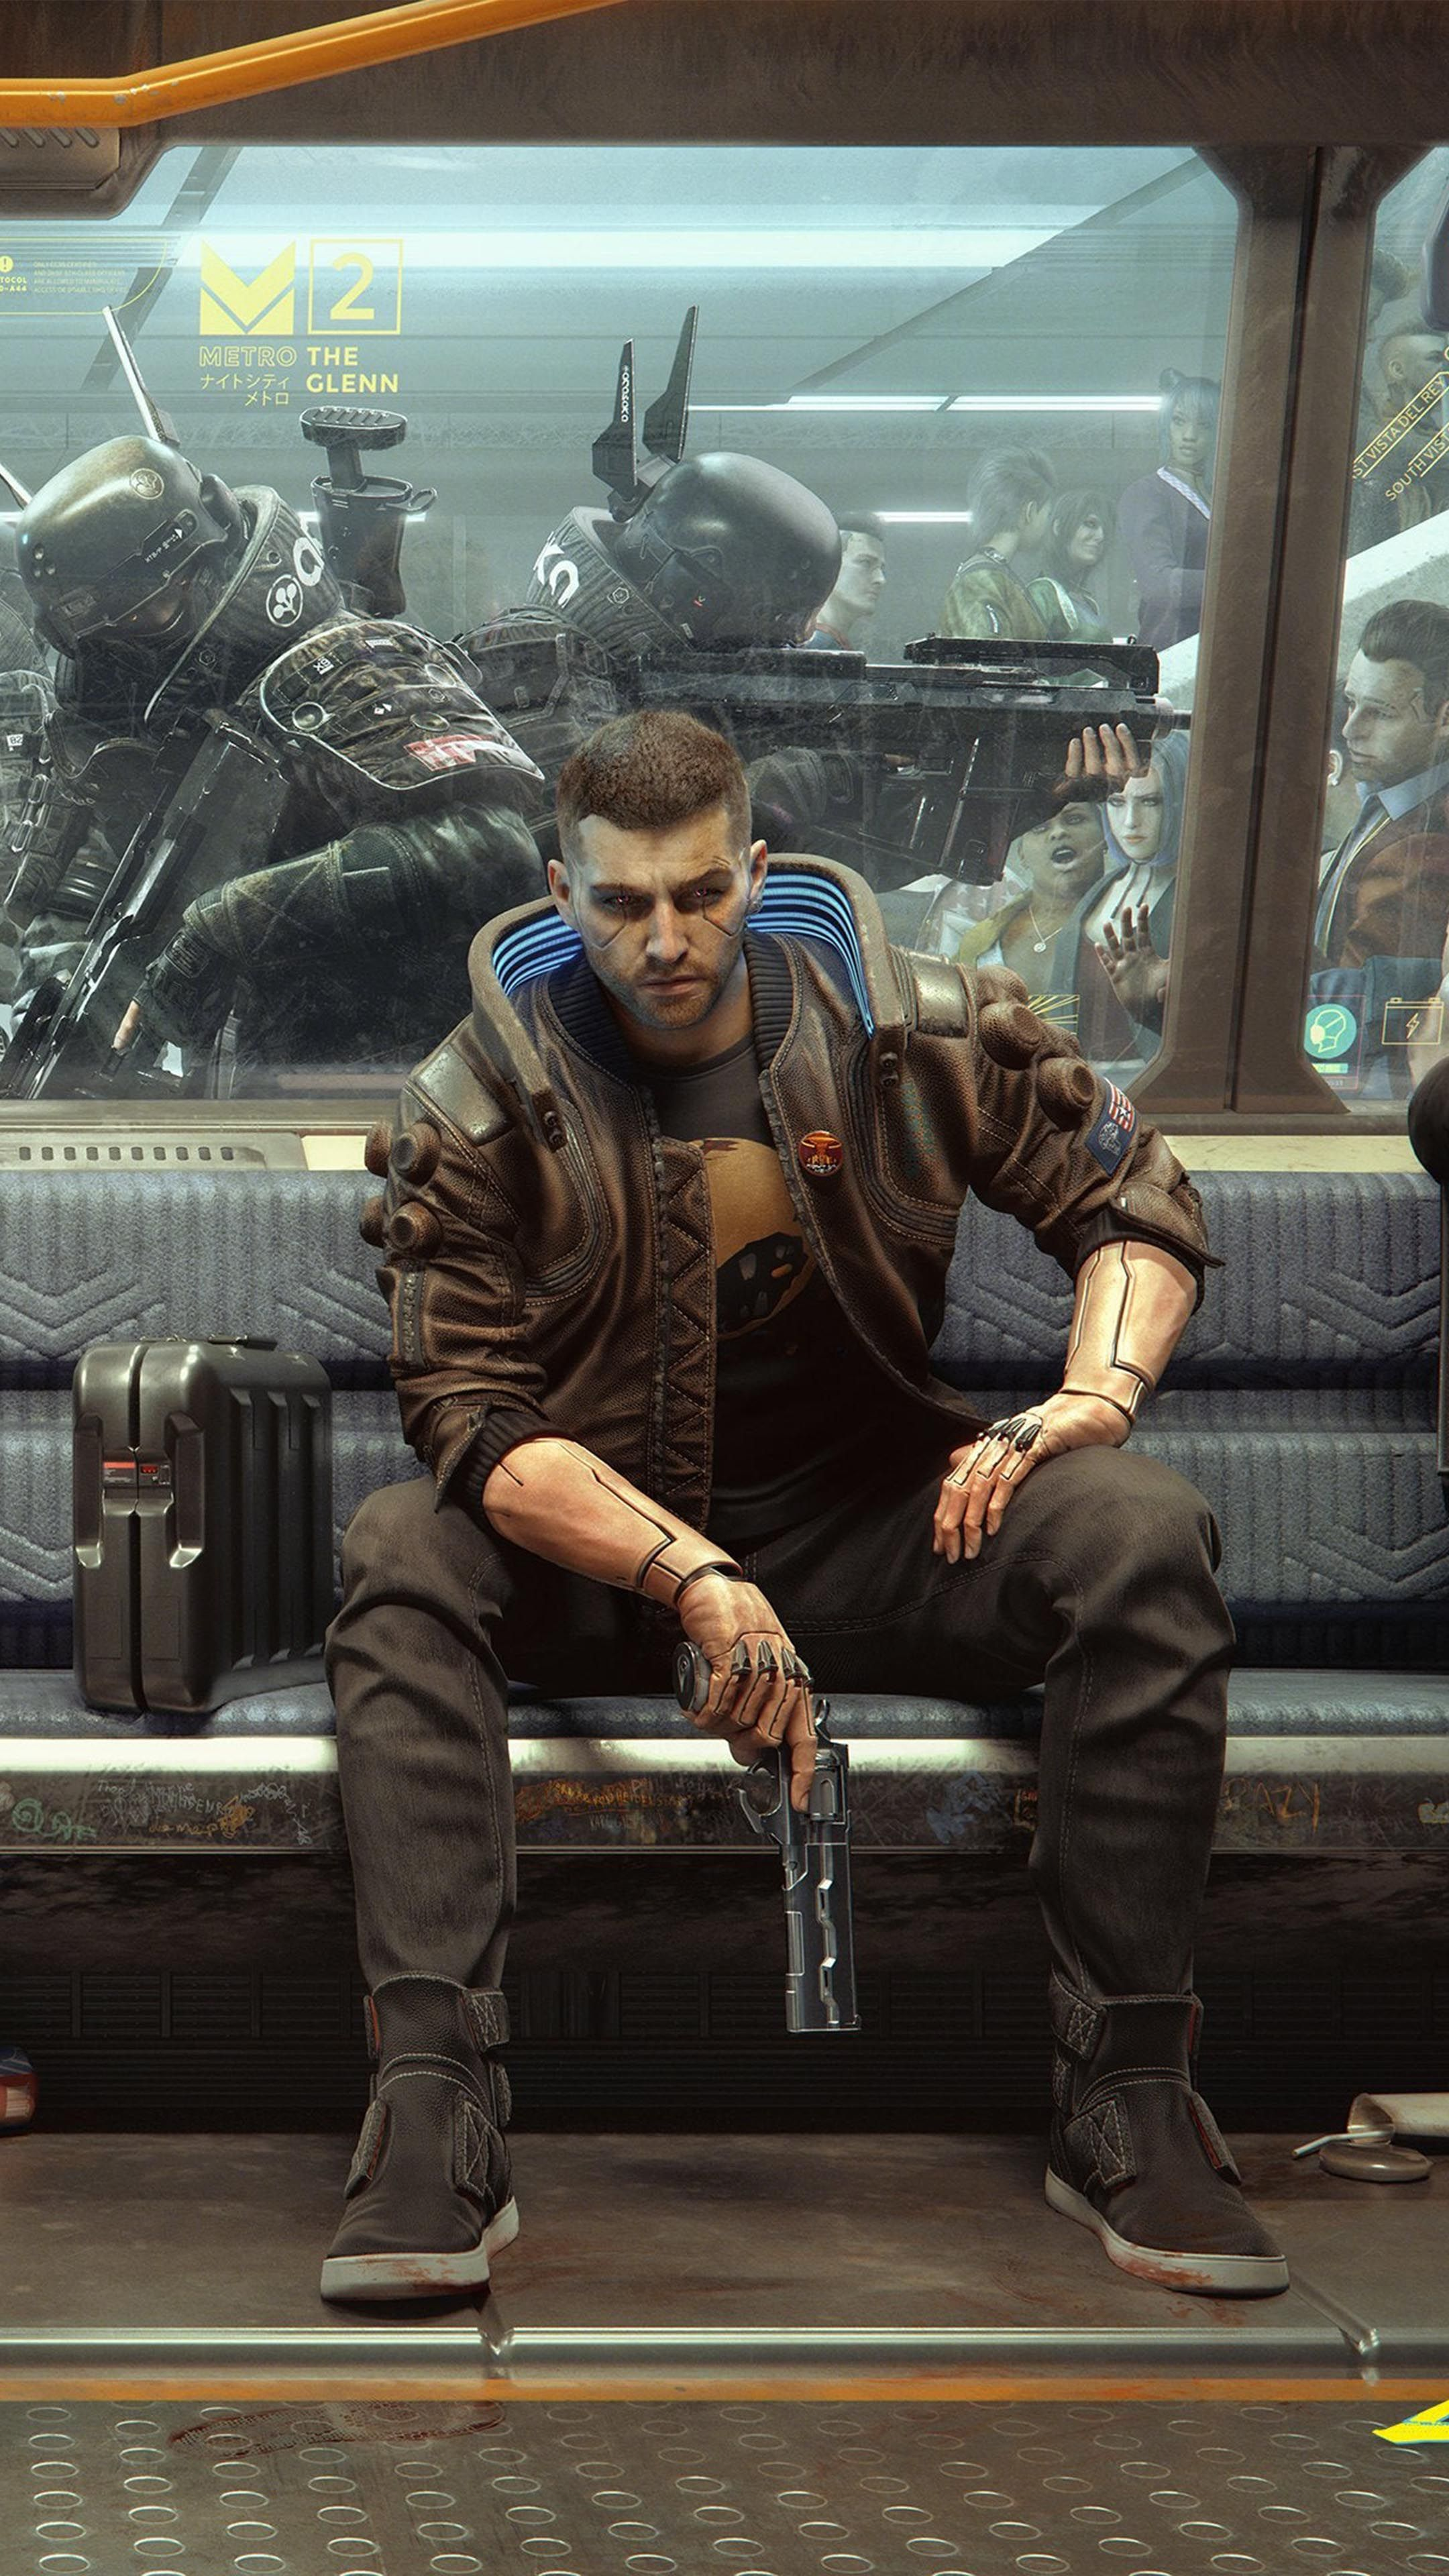 Cyberpunk 2077 Metro Soldiers 4k Ultra Hd Mobile Wallpaper In 2020 Cyberpunk 2077 Cyberpunk Cyberpunk Aesthetic